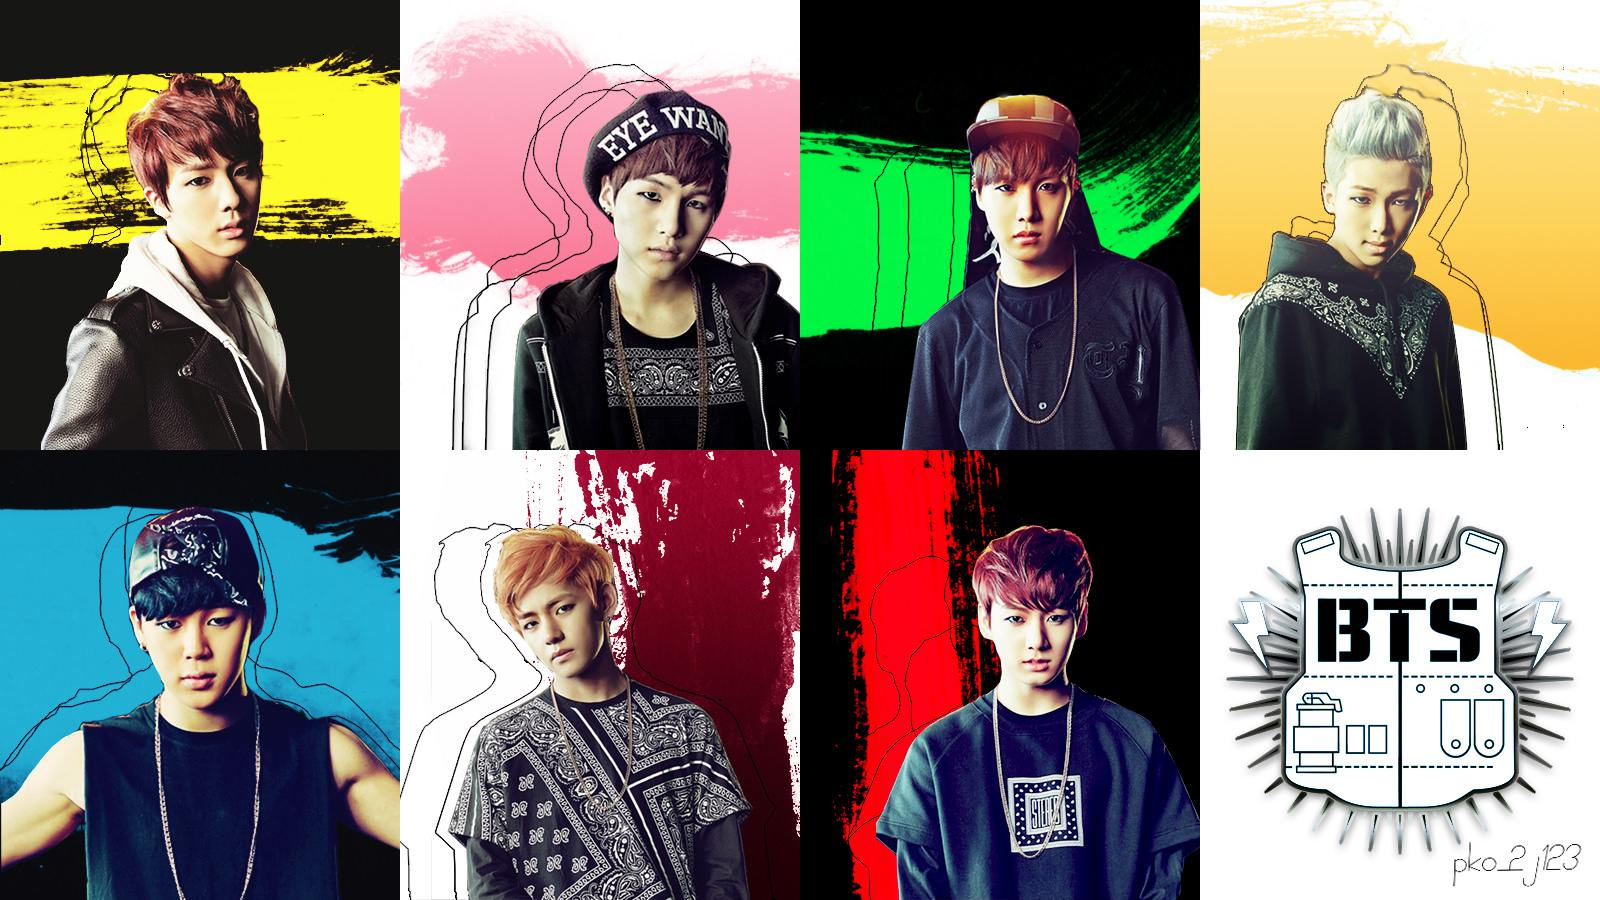 Bts No More Dream Japanese Wallpaper By Pko 2j123